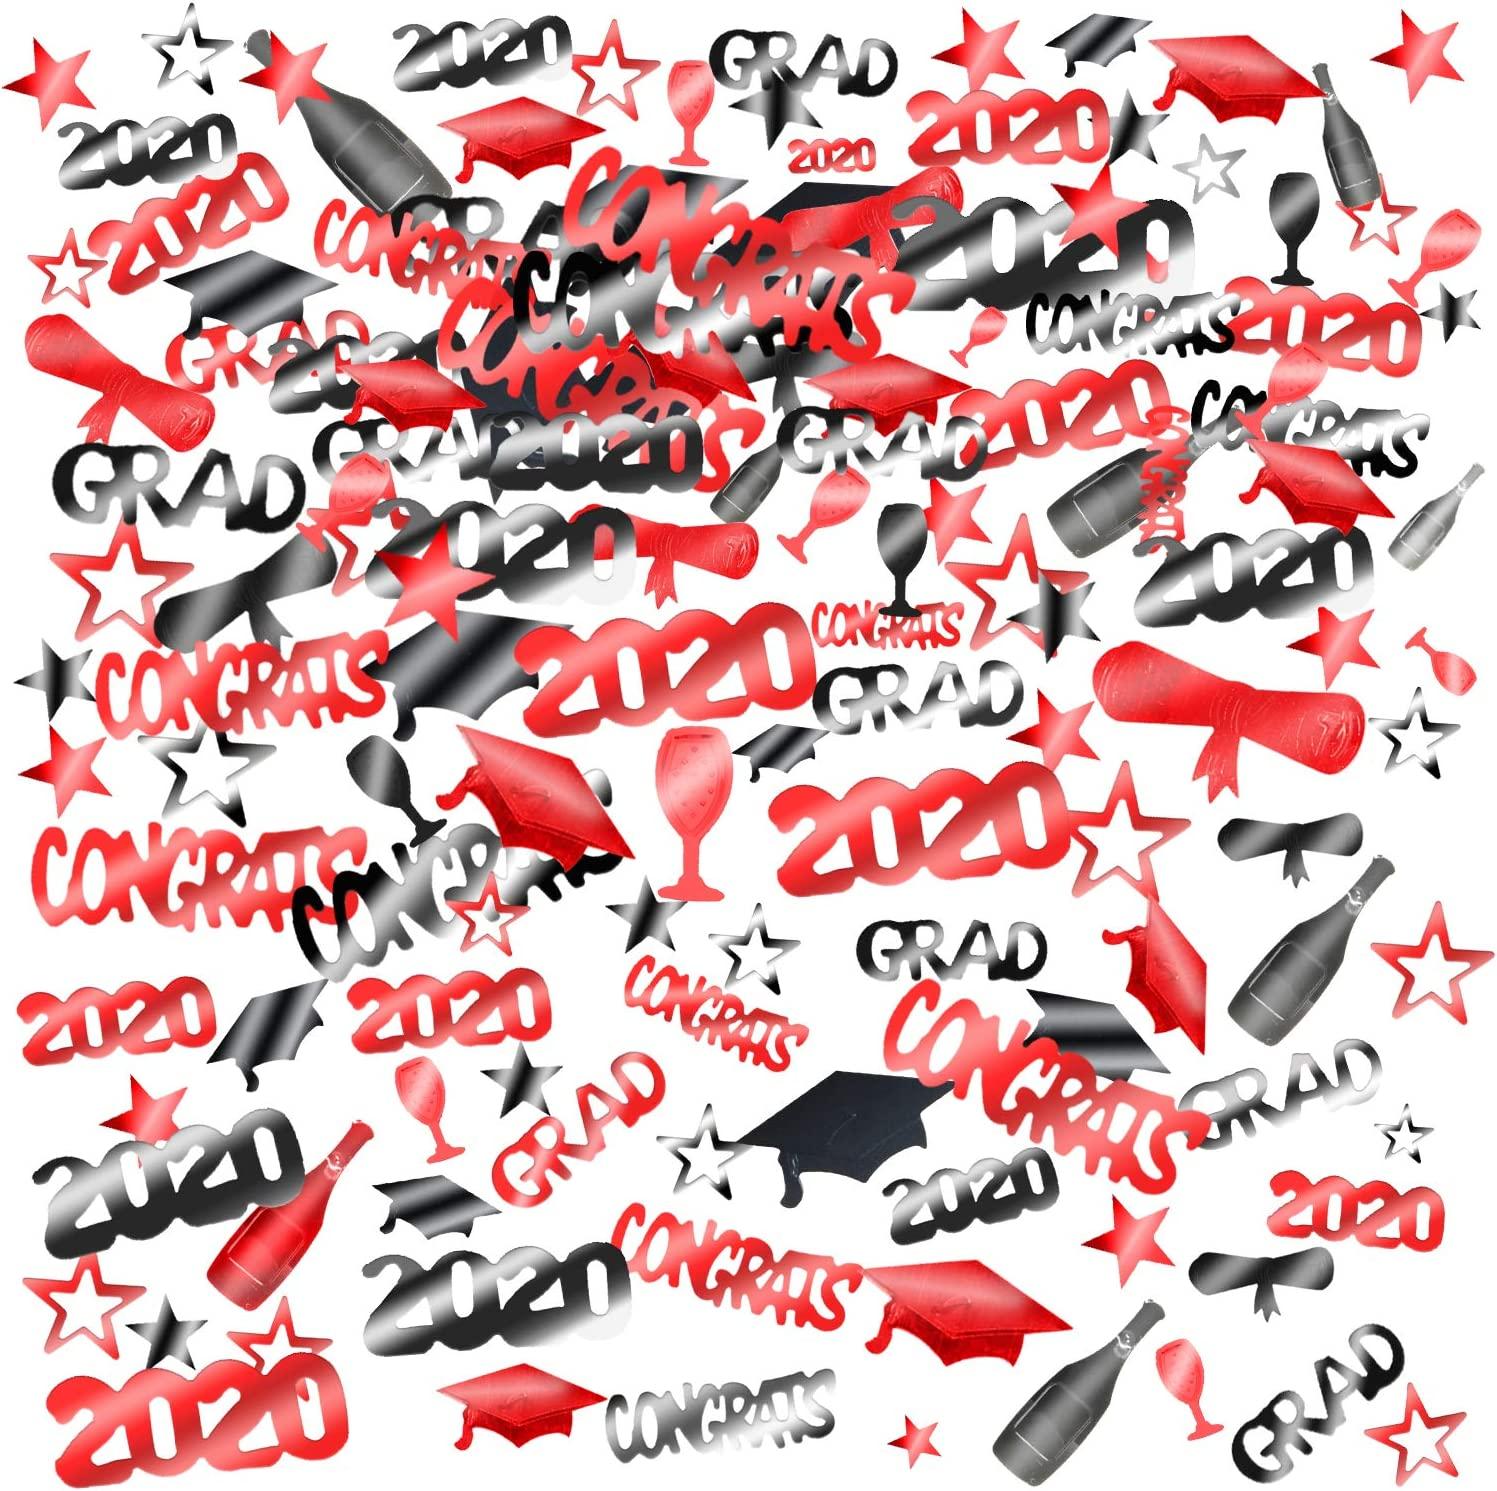 Konsait 2020 Graduation Confetti, Black Red Decor Graduation Party Supplies, 2 Oz/ 1500 Pieces, Graduation Table Decorations, Congrats, Stars, 2020, Cap, Goblet, Diploma Confetti